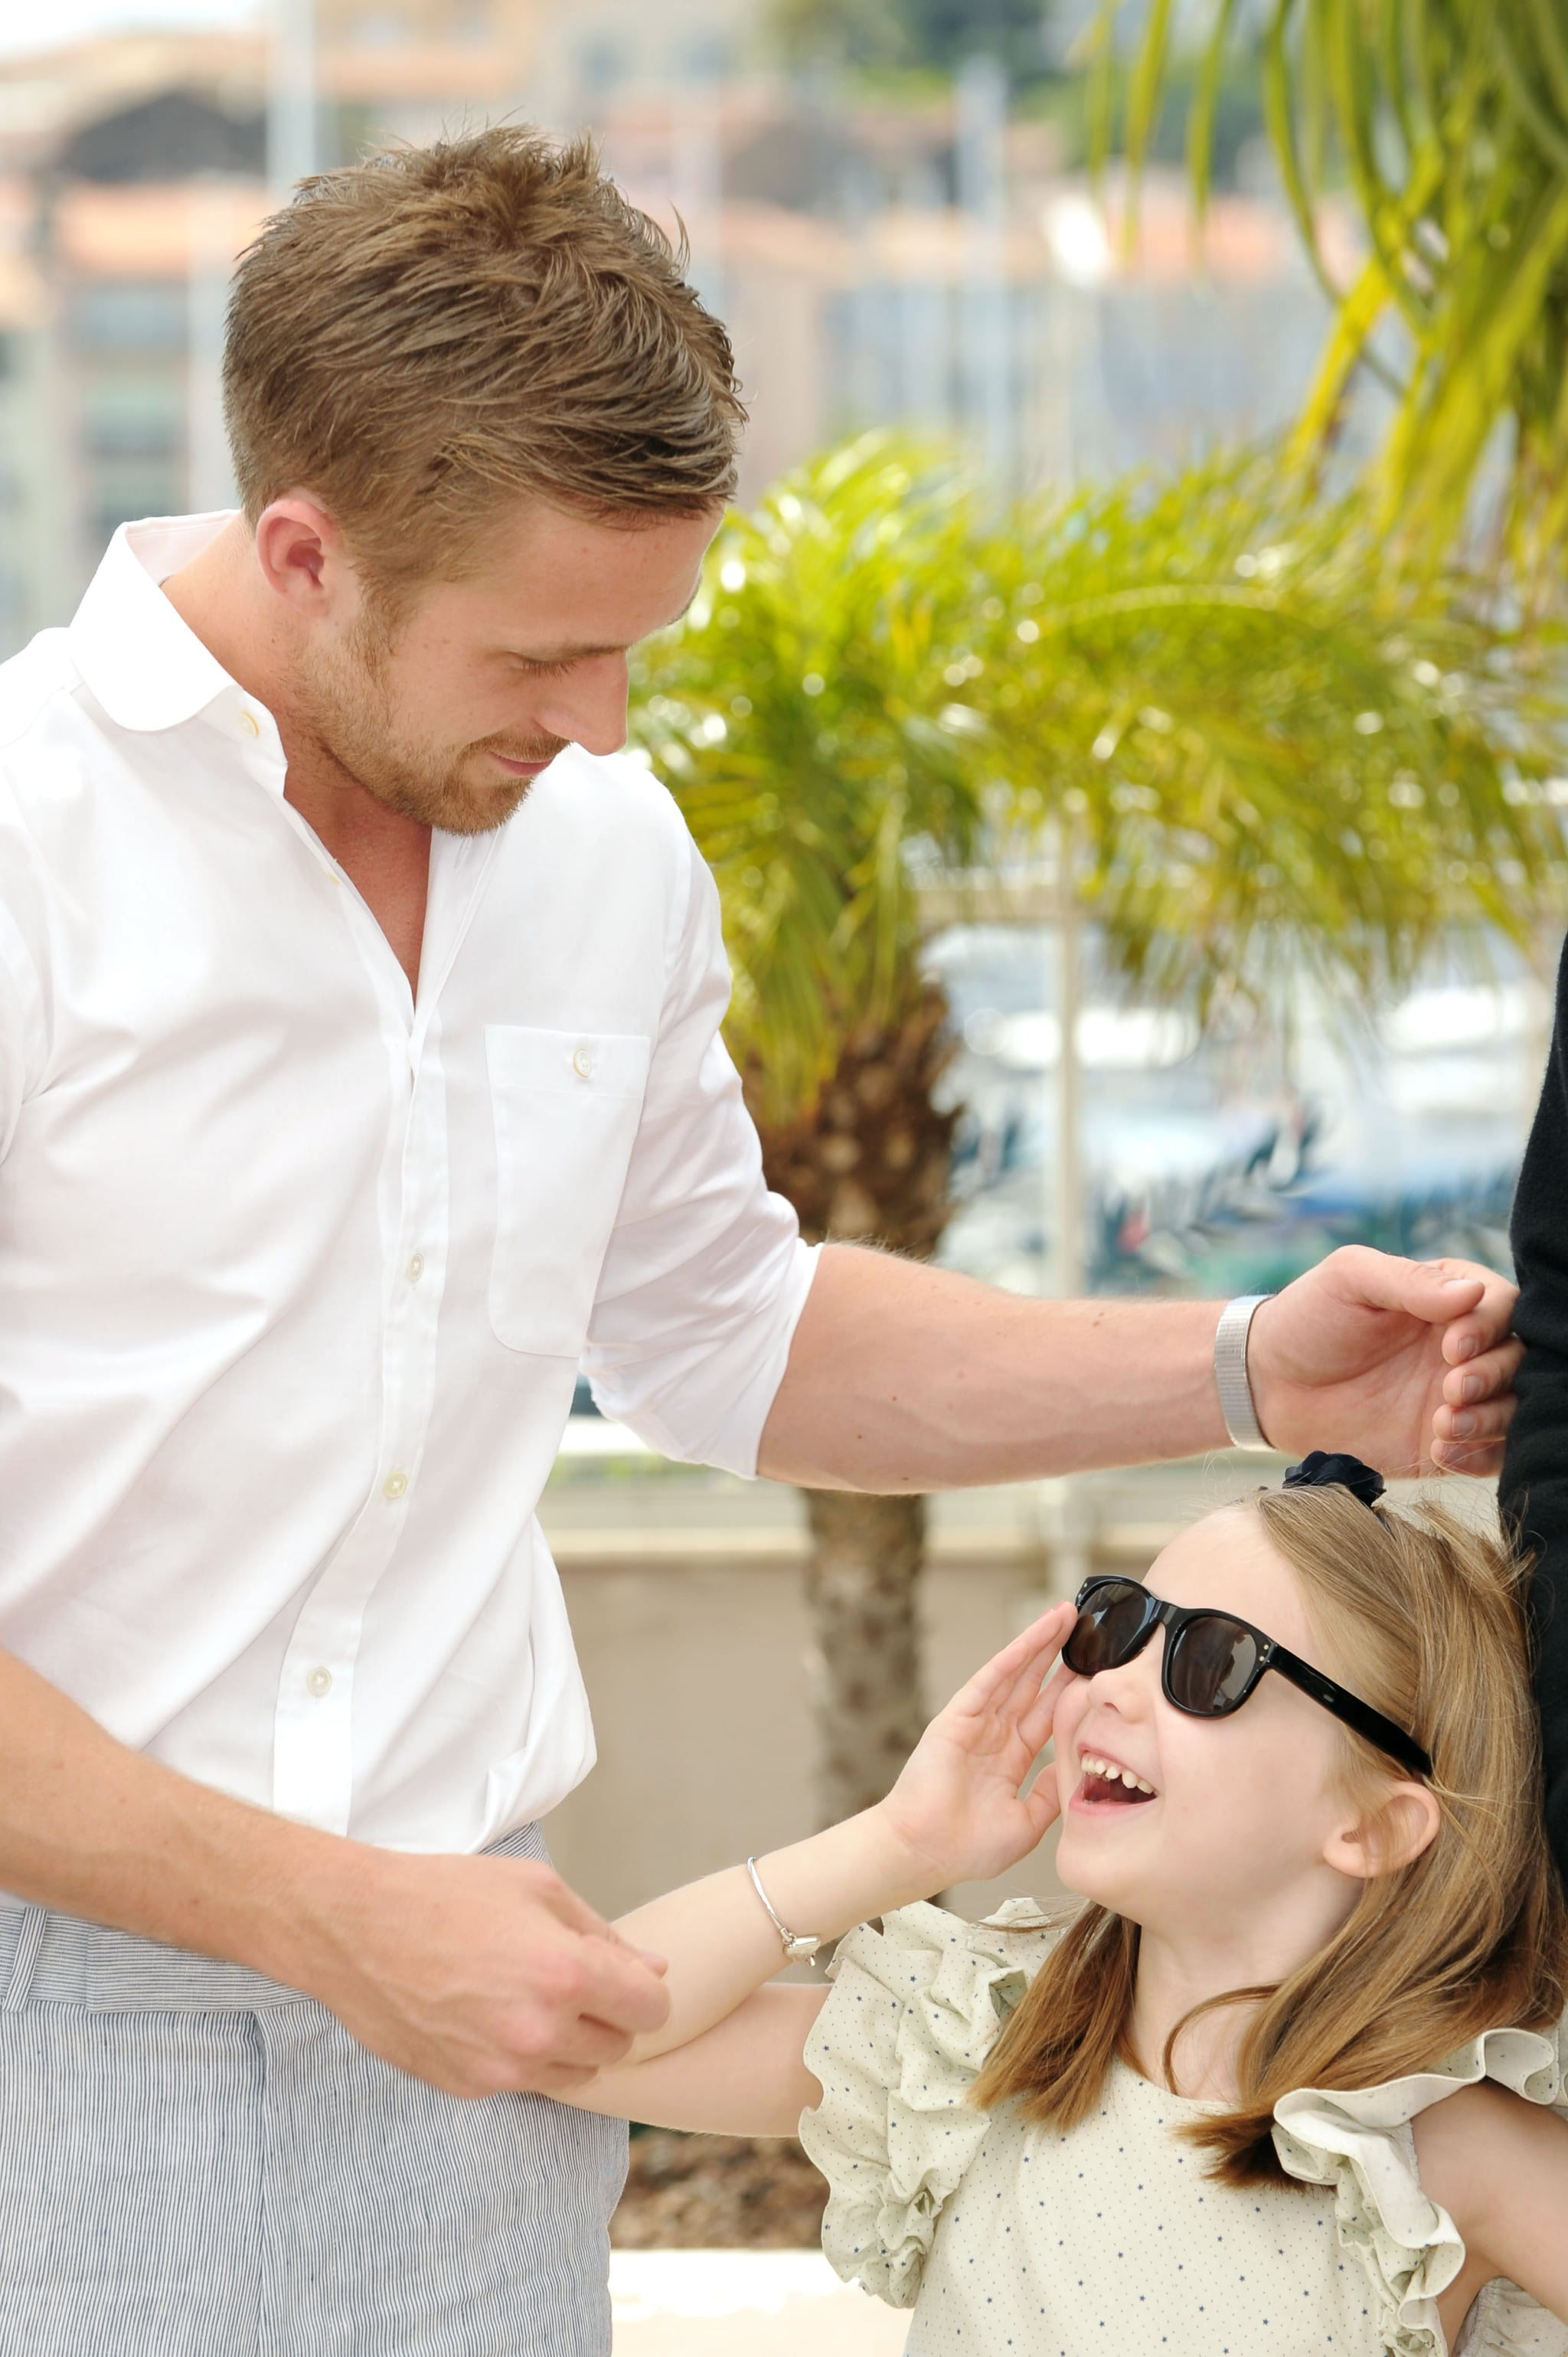 At the Cannes Film Festival, Ryan let Faith Wladyka wear his sunglasses.